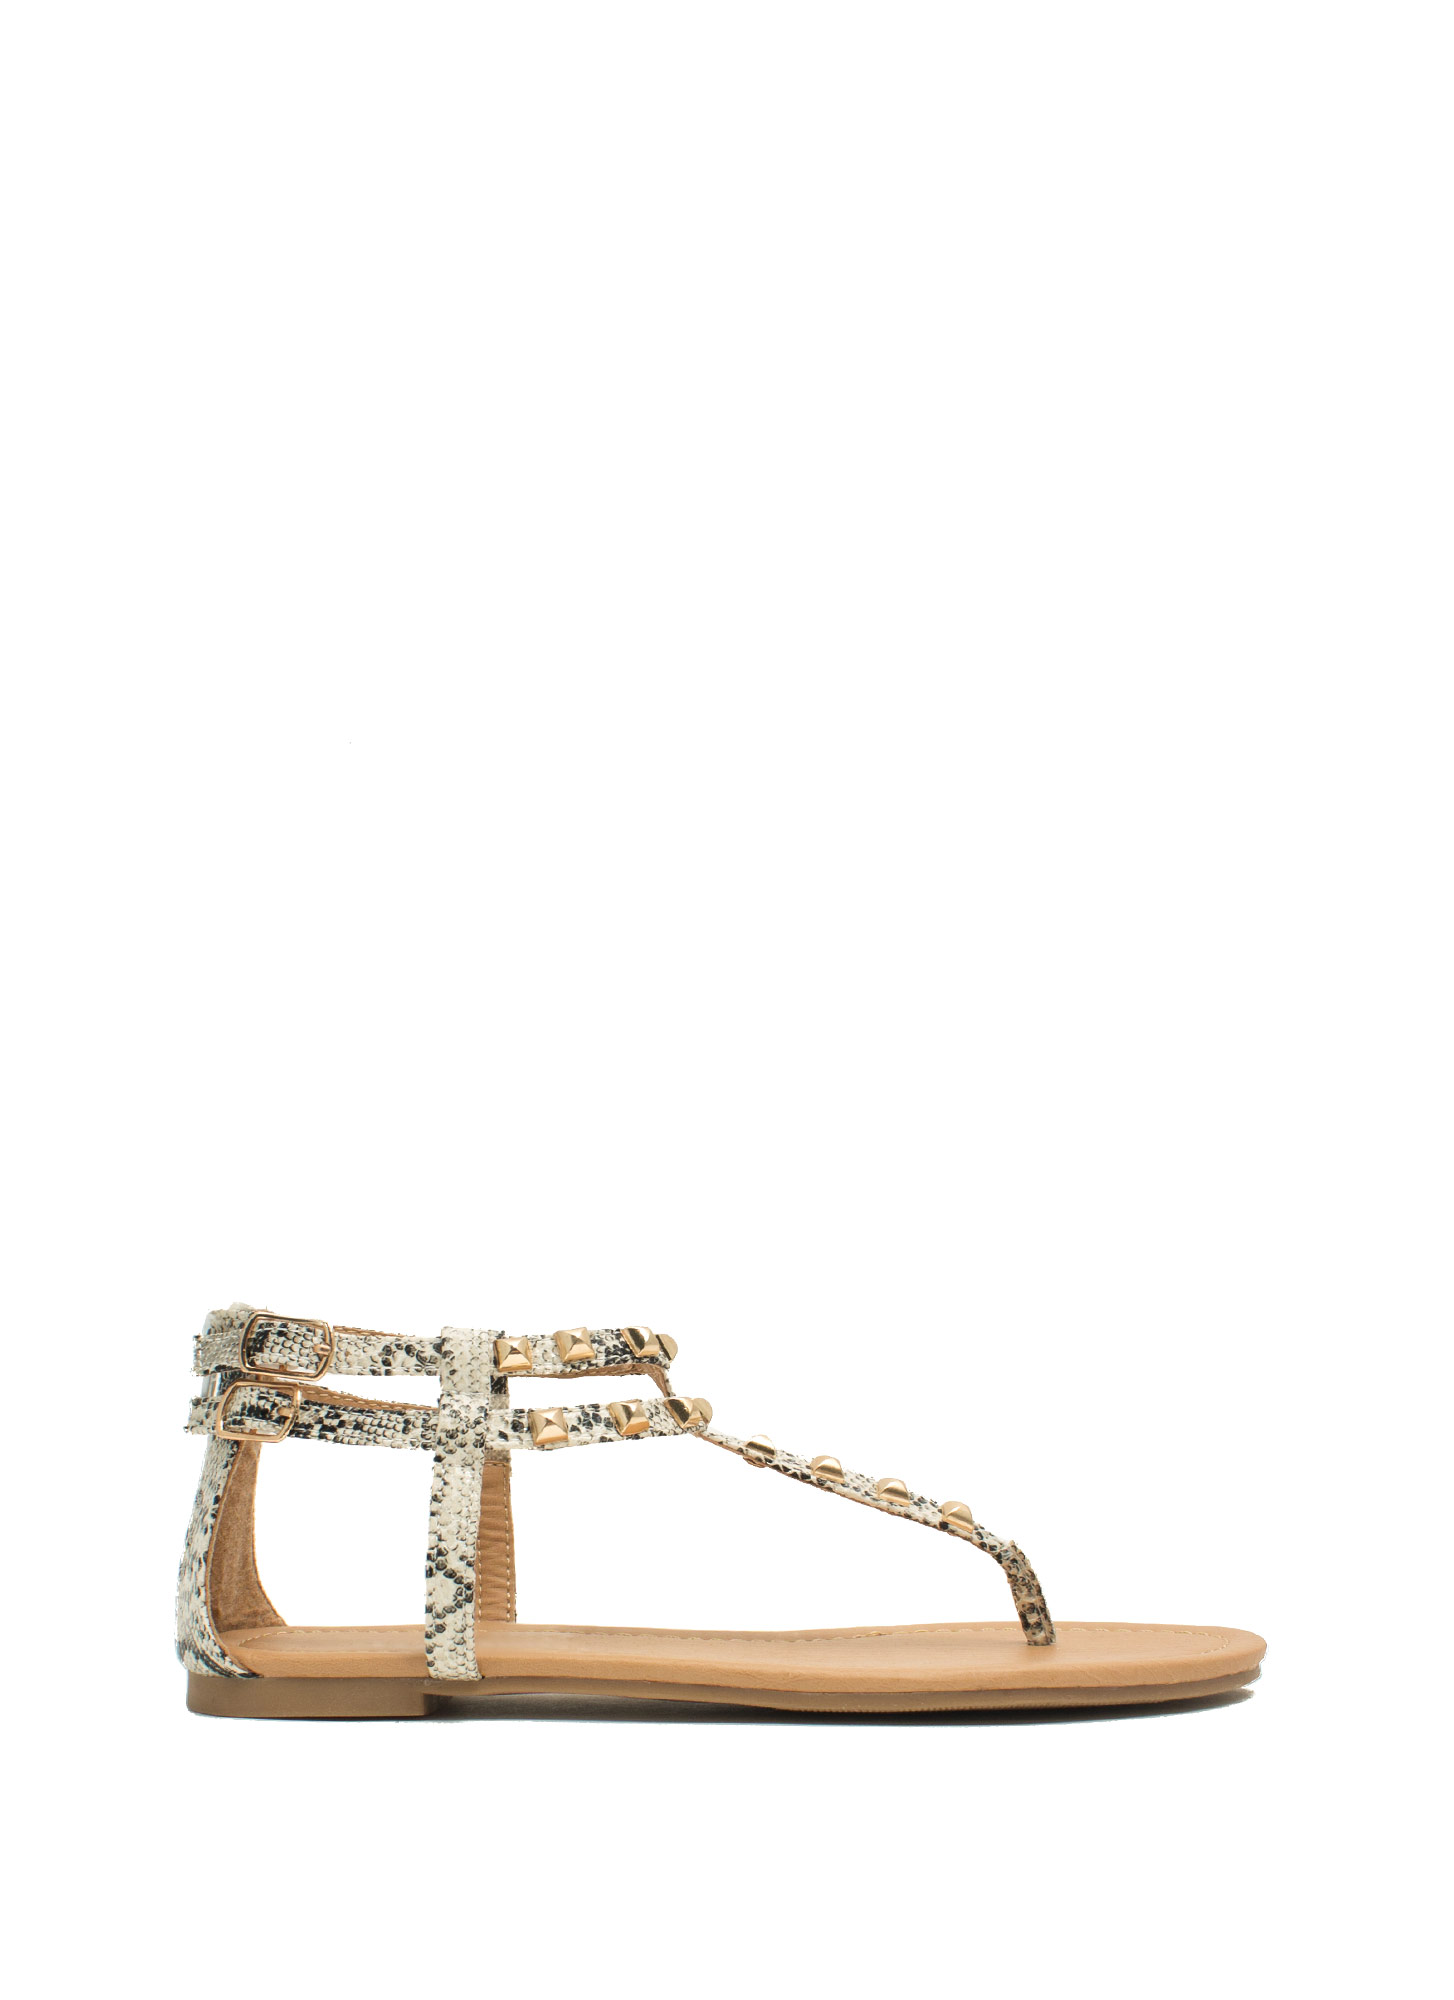 You're A Stud Thong Sandals WHITE